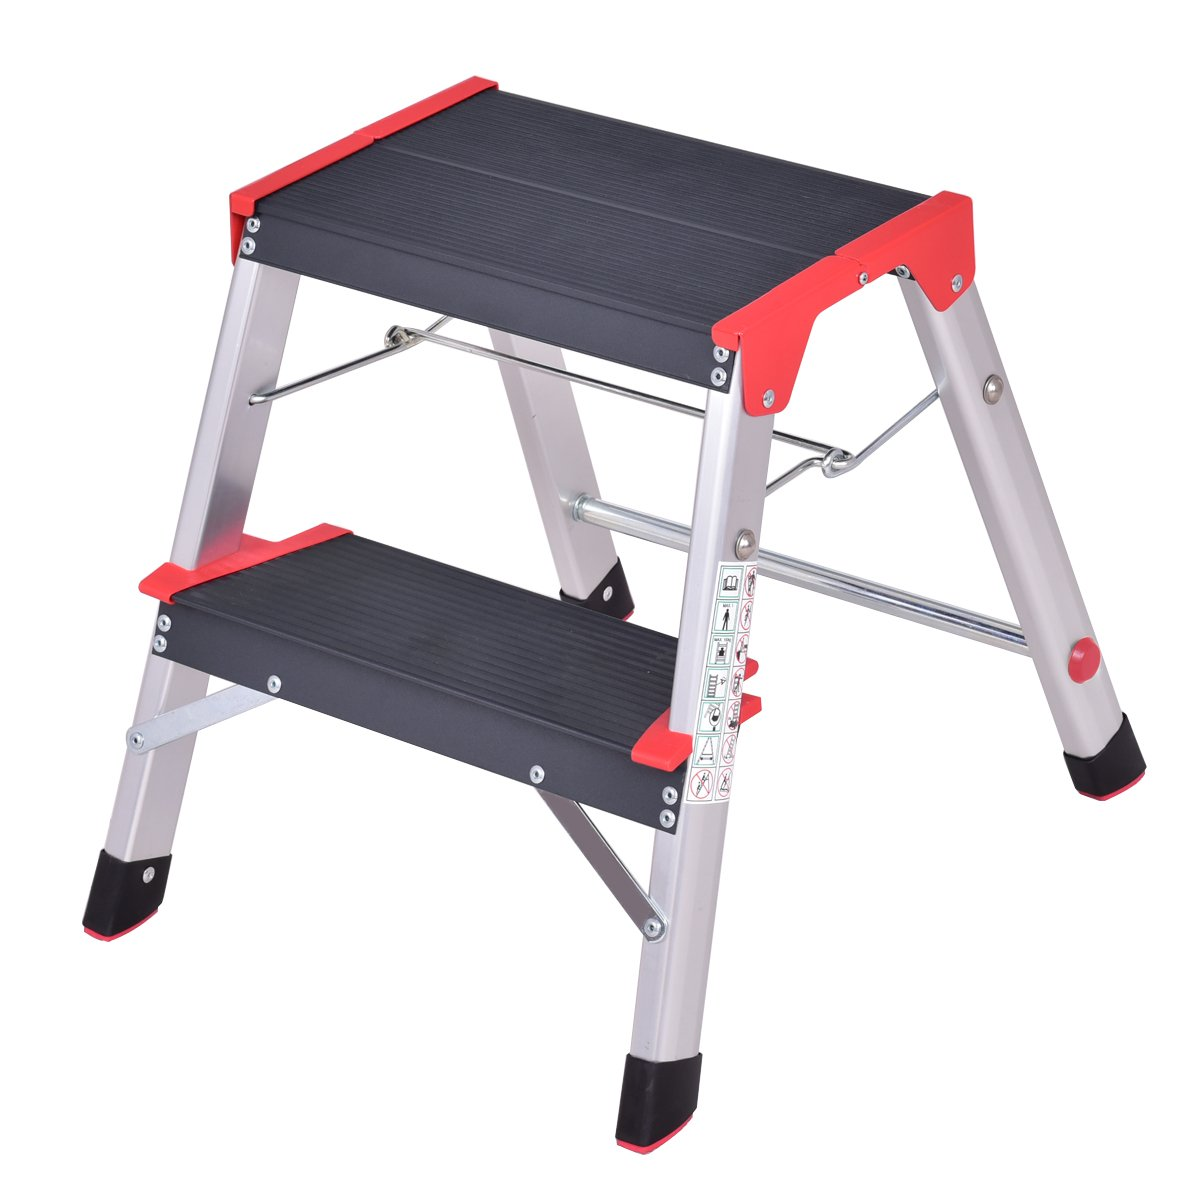 Giantex Aluminum 2 Step Ladder Folding Non-Slip Lightweight 330lbs Capacity Platform Stool by Giantex